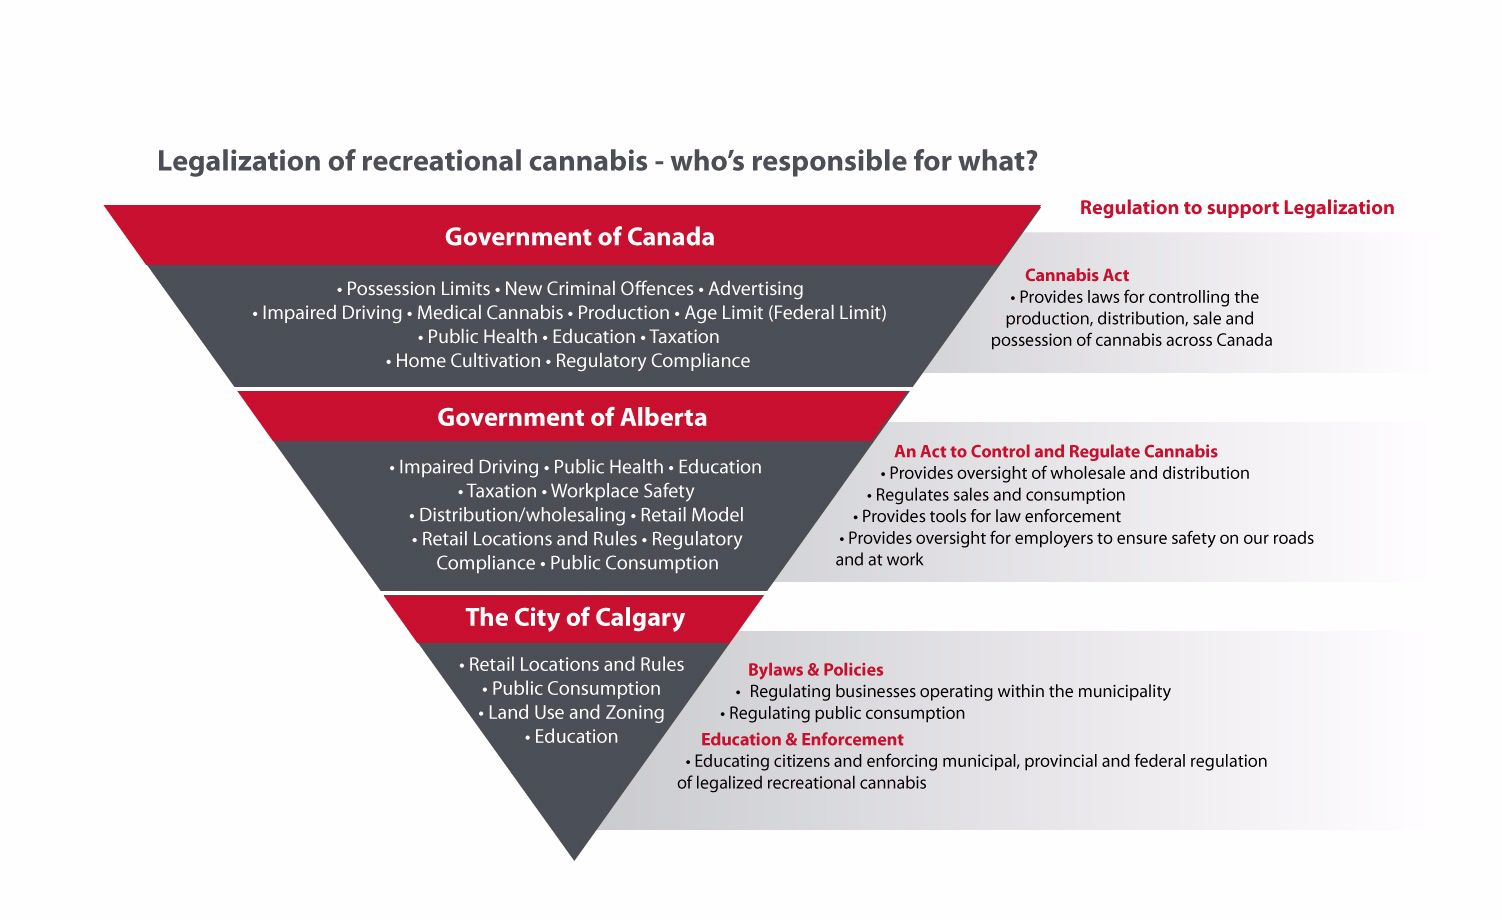 Legalization of recreational cannabis - who's responsible for what?  Government of Canada  Possession limits • New Criminal Offences • Advertising Impaired Driving • Medical Cannabis • Production • Age Limit (Federal Limit) • Public Health • Education • T